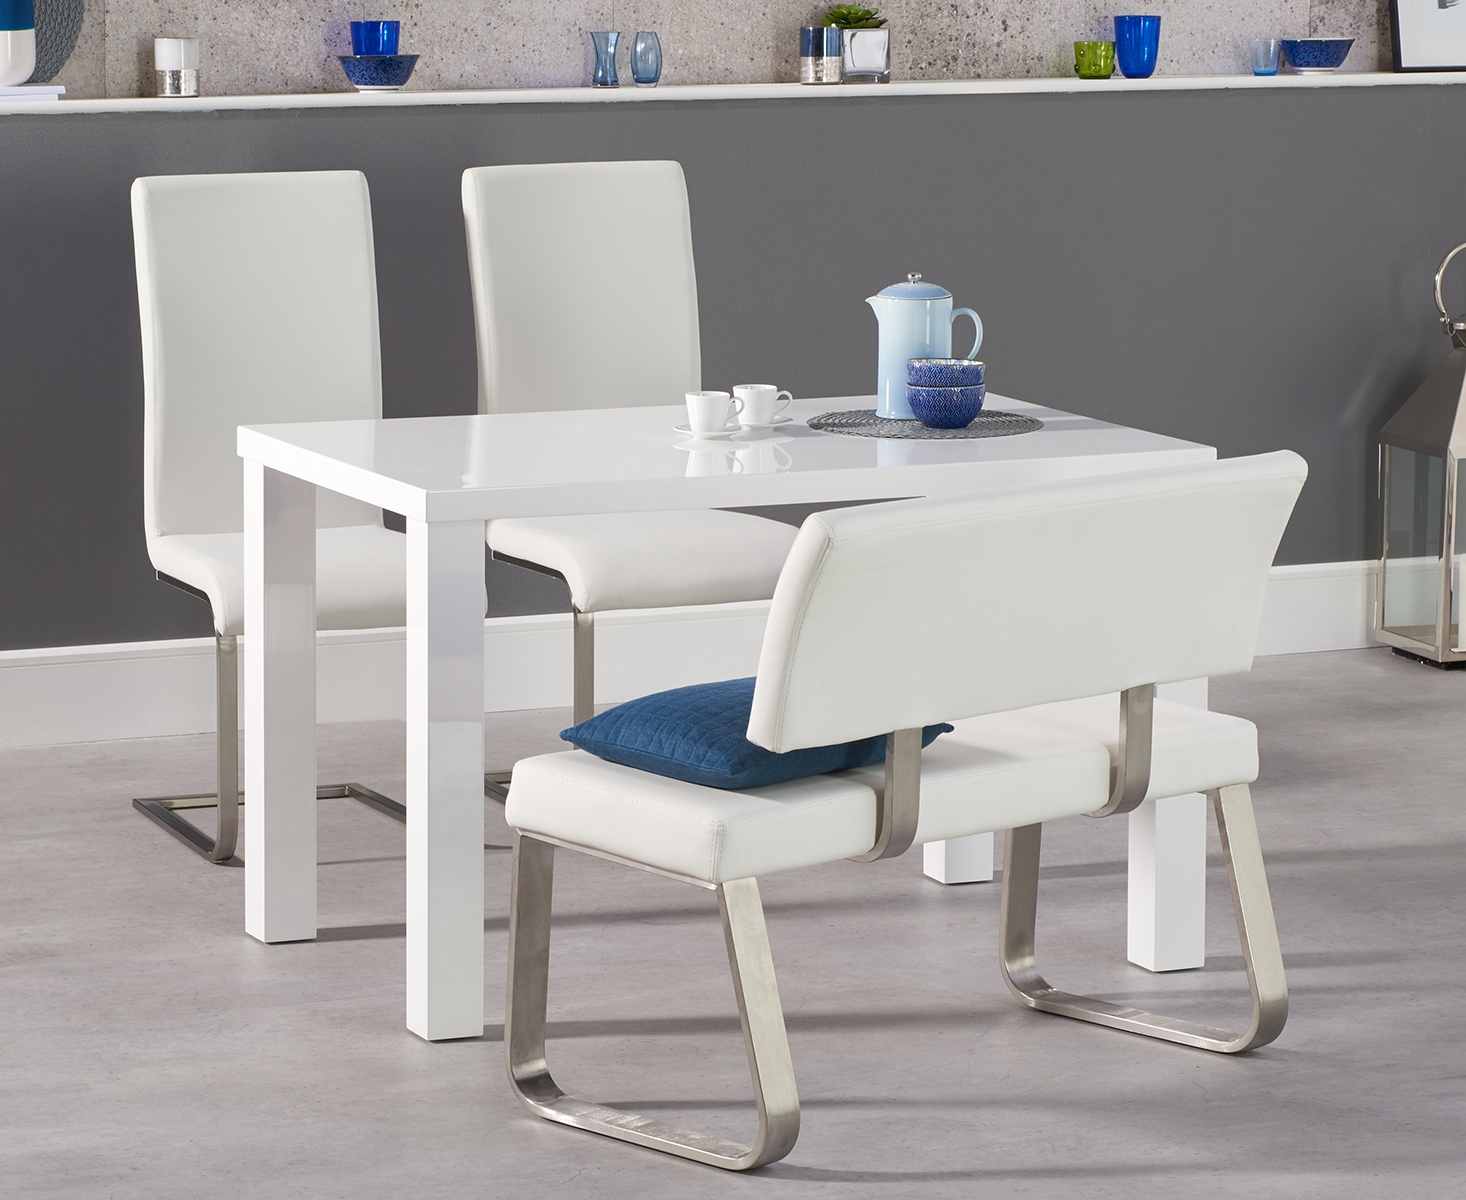 An image of Atlanta 120cm White High Gloss Dining Table with Malaga Chairs and Malaga White ...